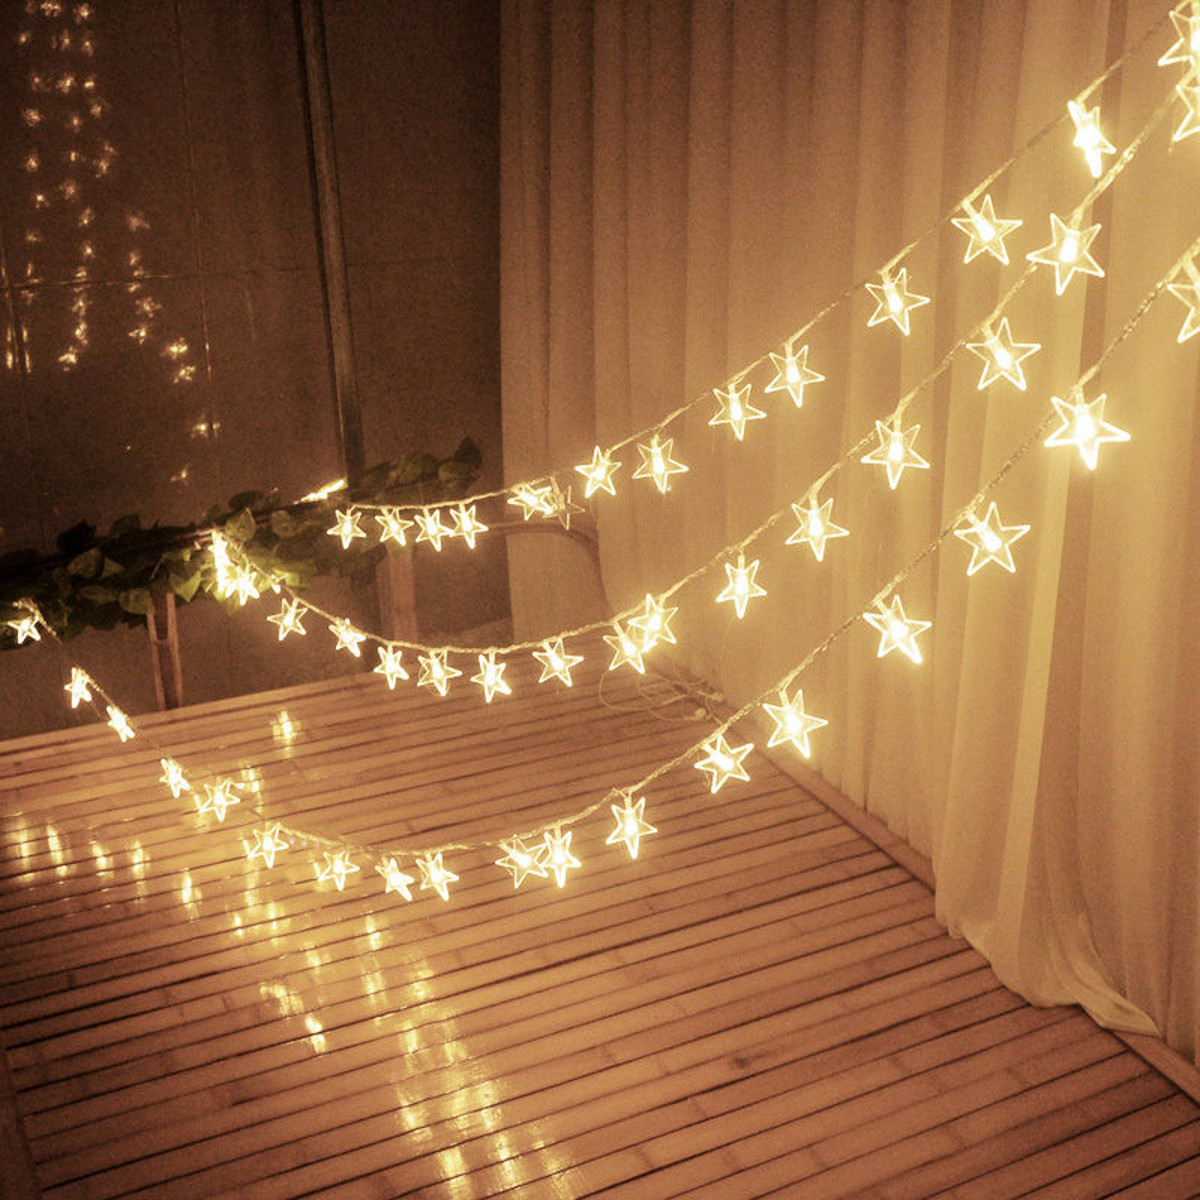 10m 100leds 8modes indoor outdoor star fairy string light - Indoor string light decoration ideas ...